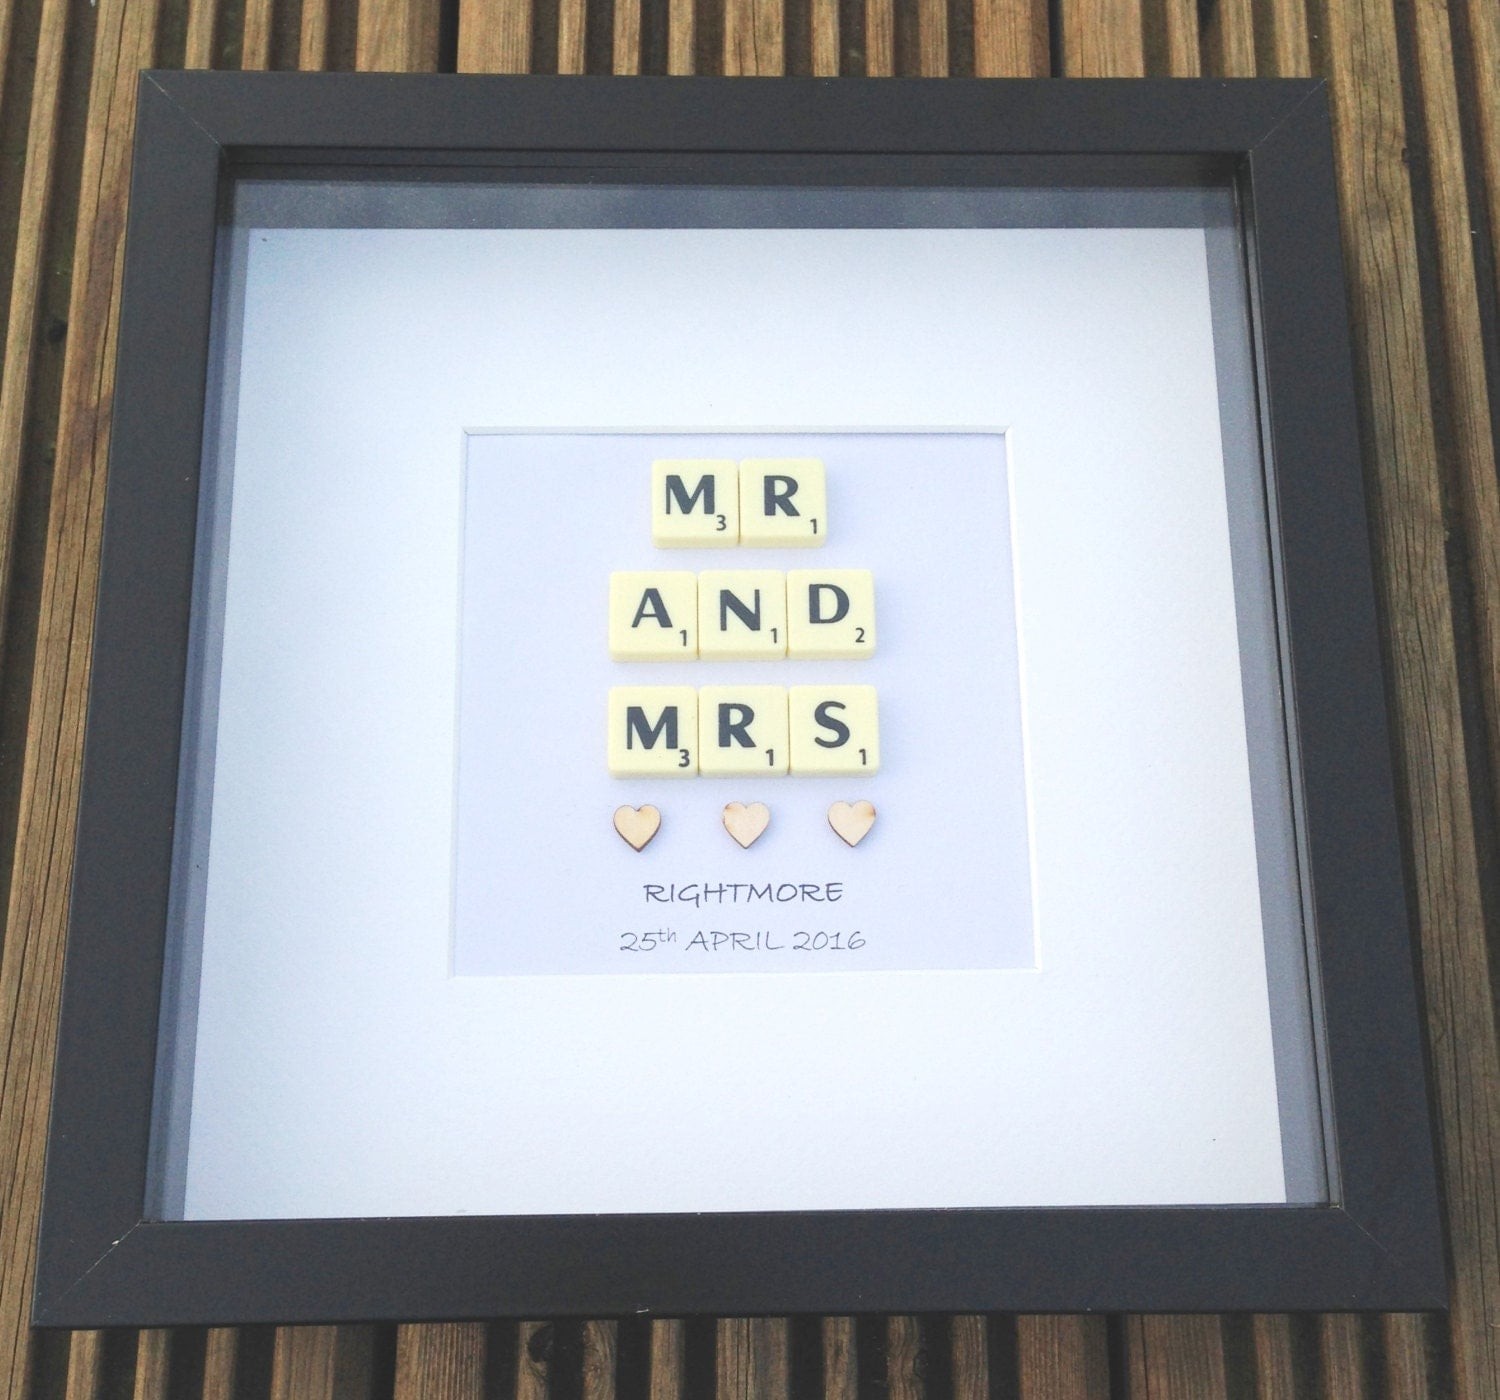 Wedding Gift Framed Art : Scrabble Art Frame Wedding Gifts Personalised Framed